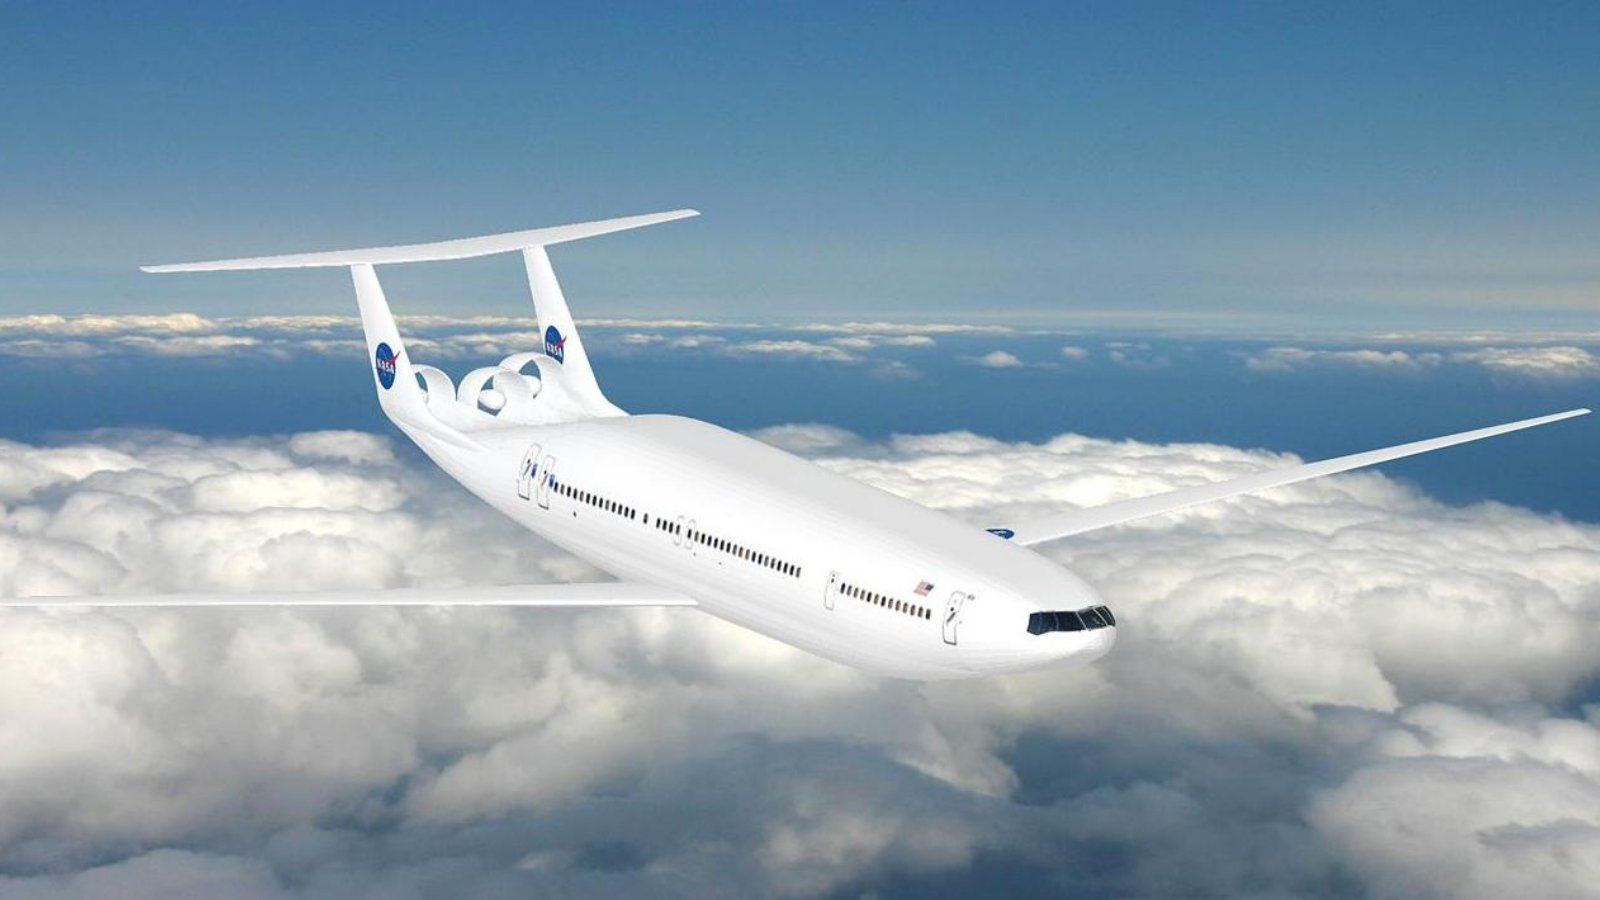 Research paper on airbus a380 video